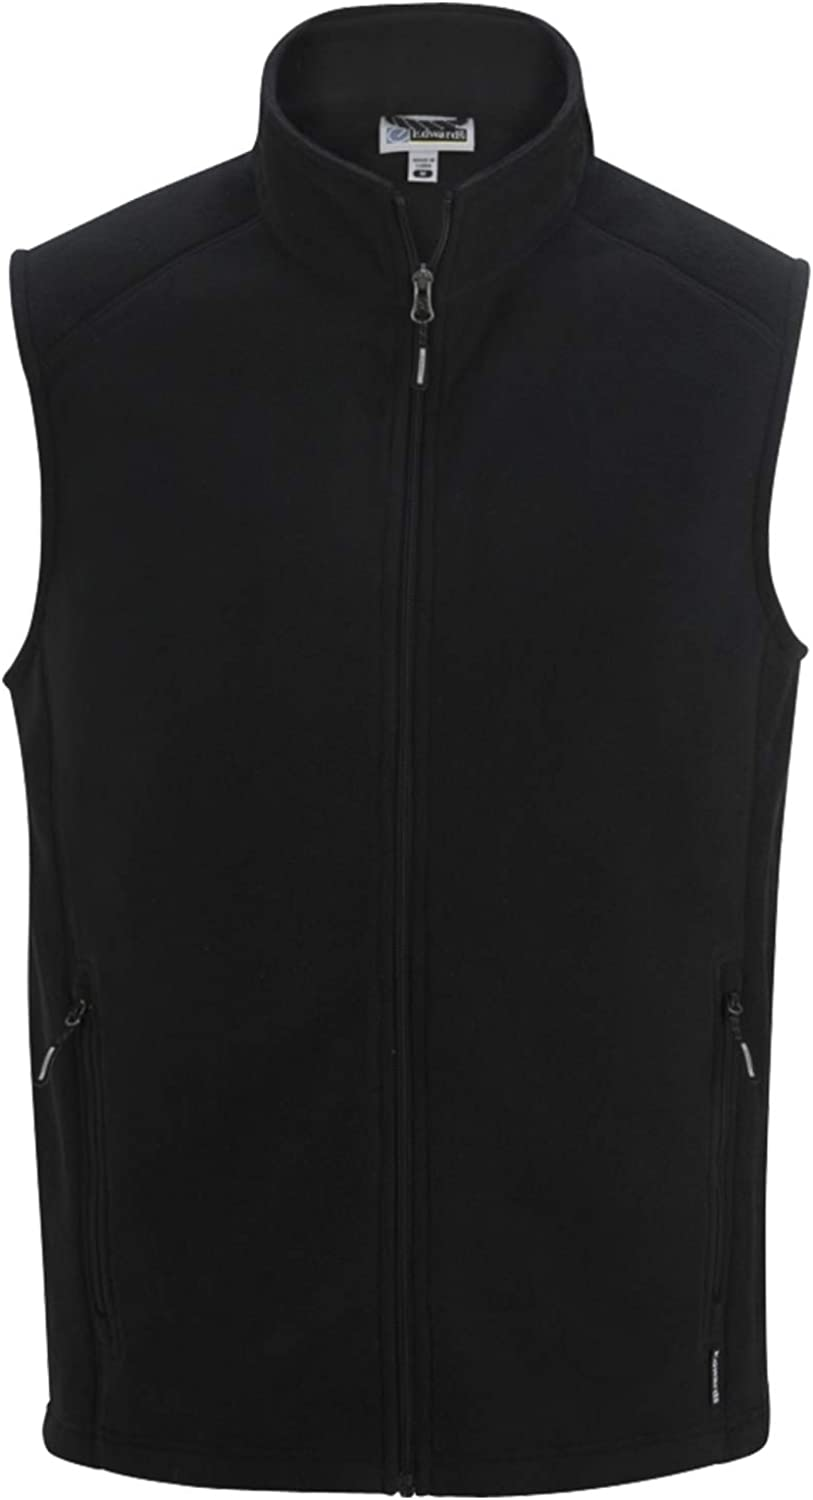 Big and Tall Fleece Vest up to 6X in 6 Colors